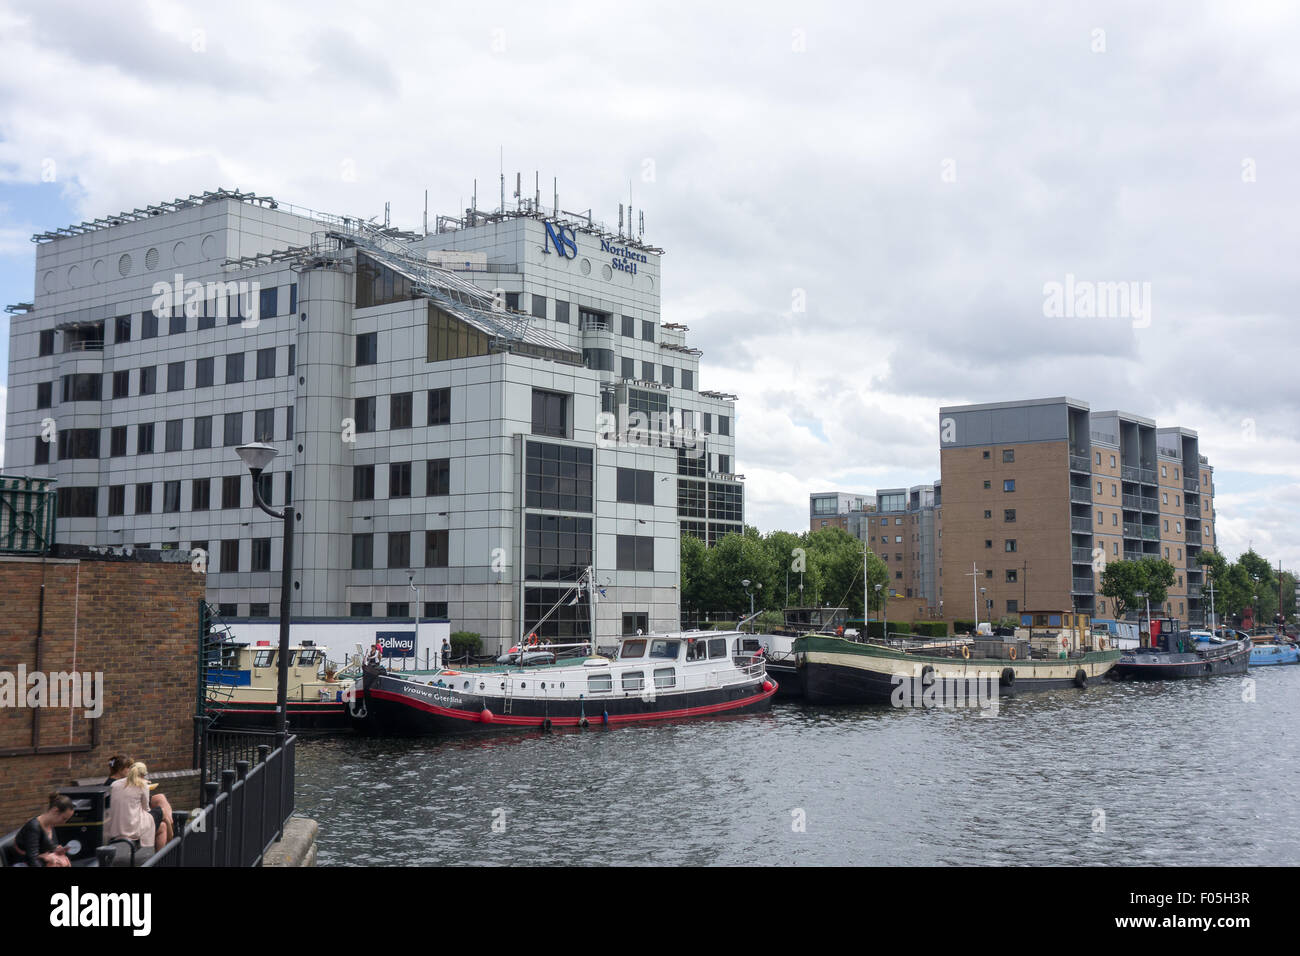 The Northern Shell Tower is home to the Northern & Shell Media Group and overlooks a dock in Crossharbour, - Stock Image